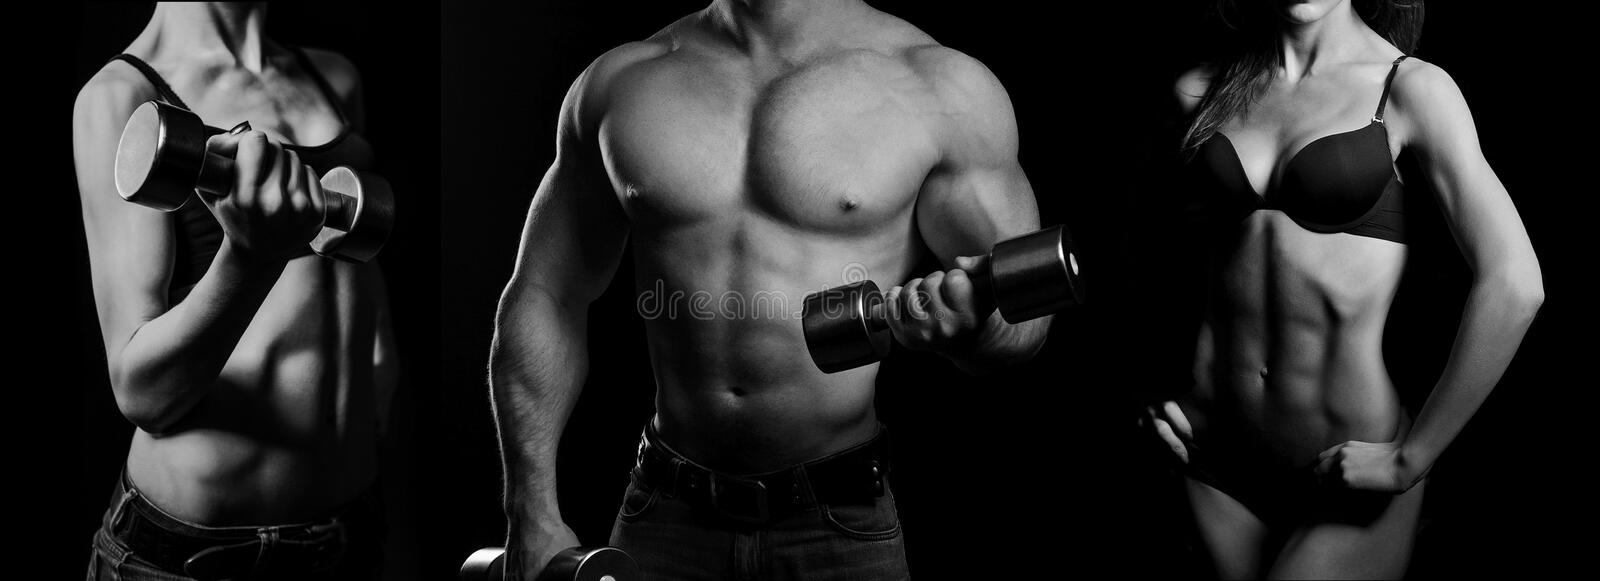 Bodybuilding. Man and woman. Bodybuilding. Strong men and a women posing on a black background stock image